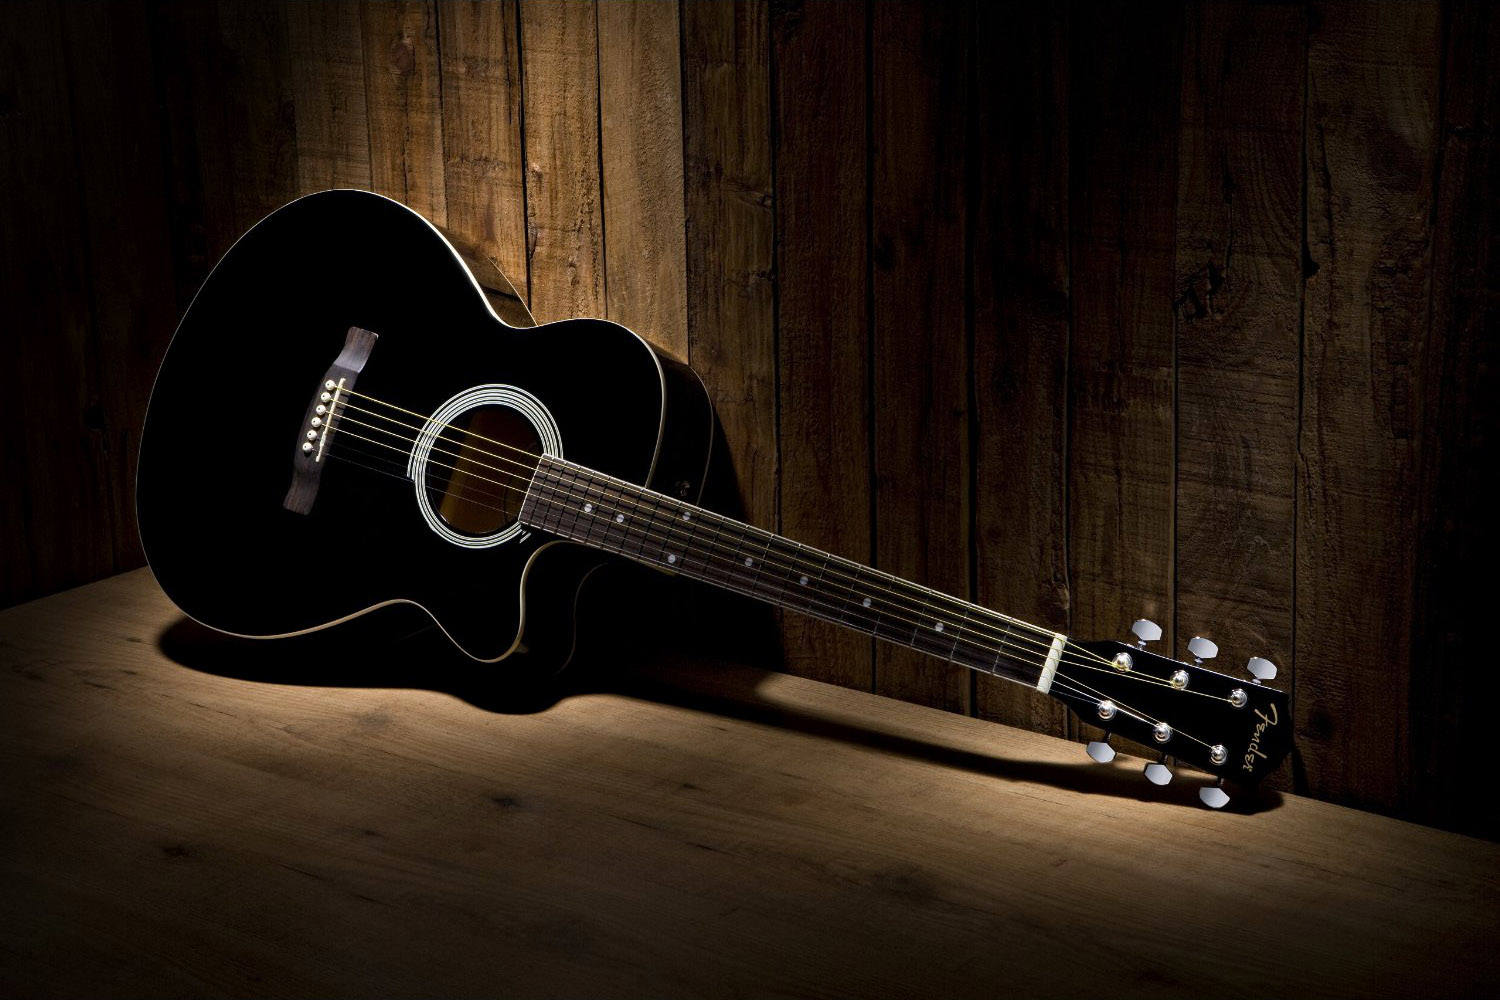 Washburn Guitars - Wallpaper